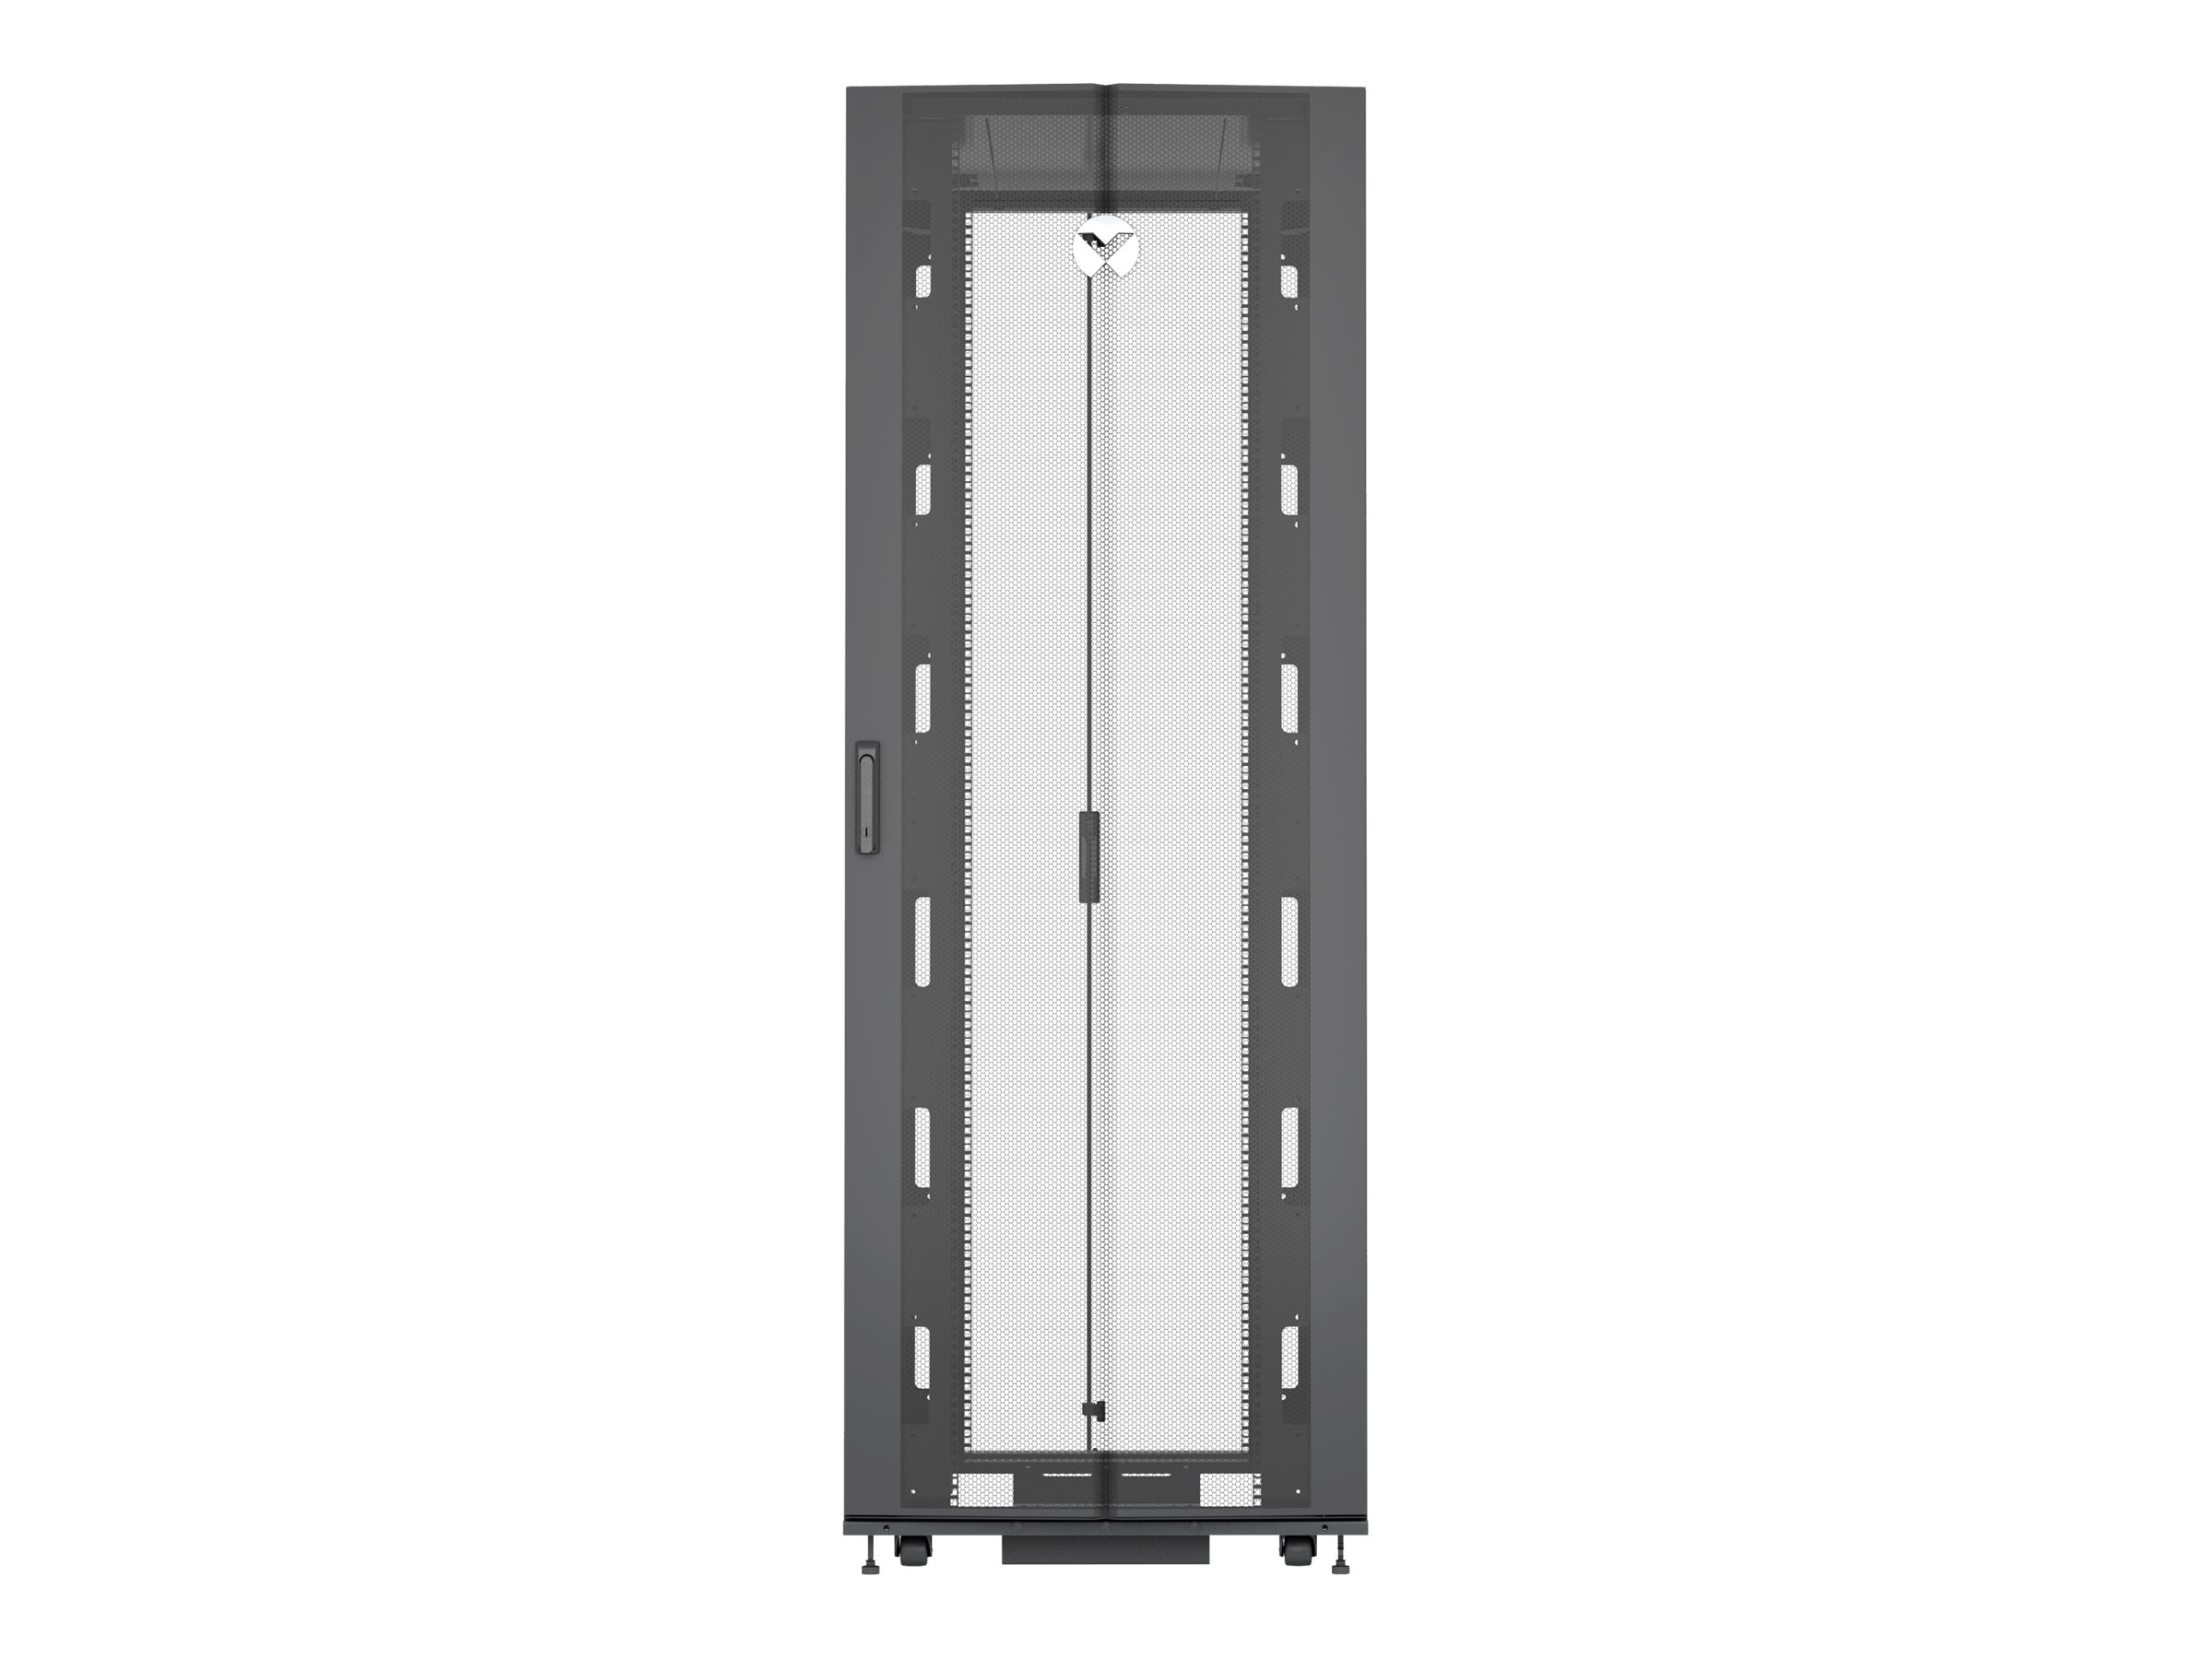 Vertiv VR VR3350SP rack - 42U